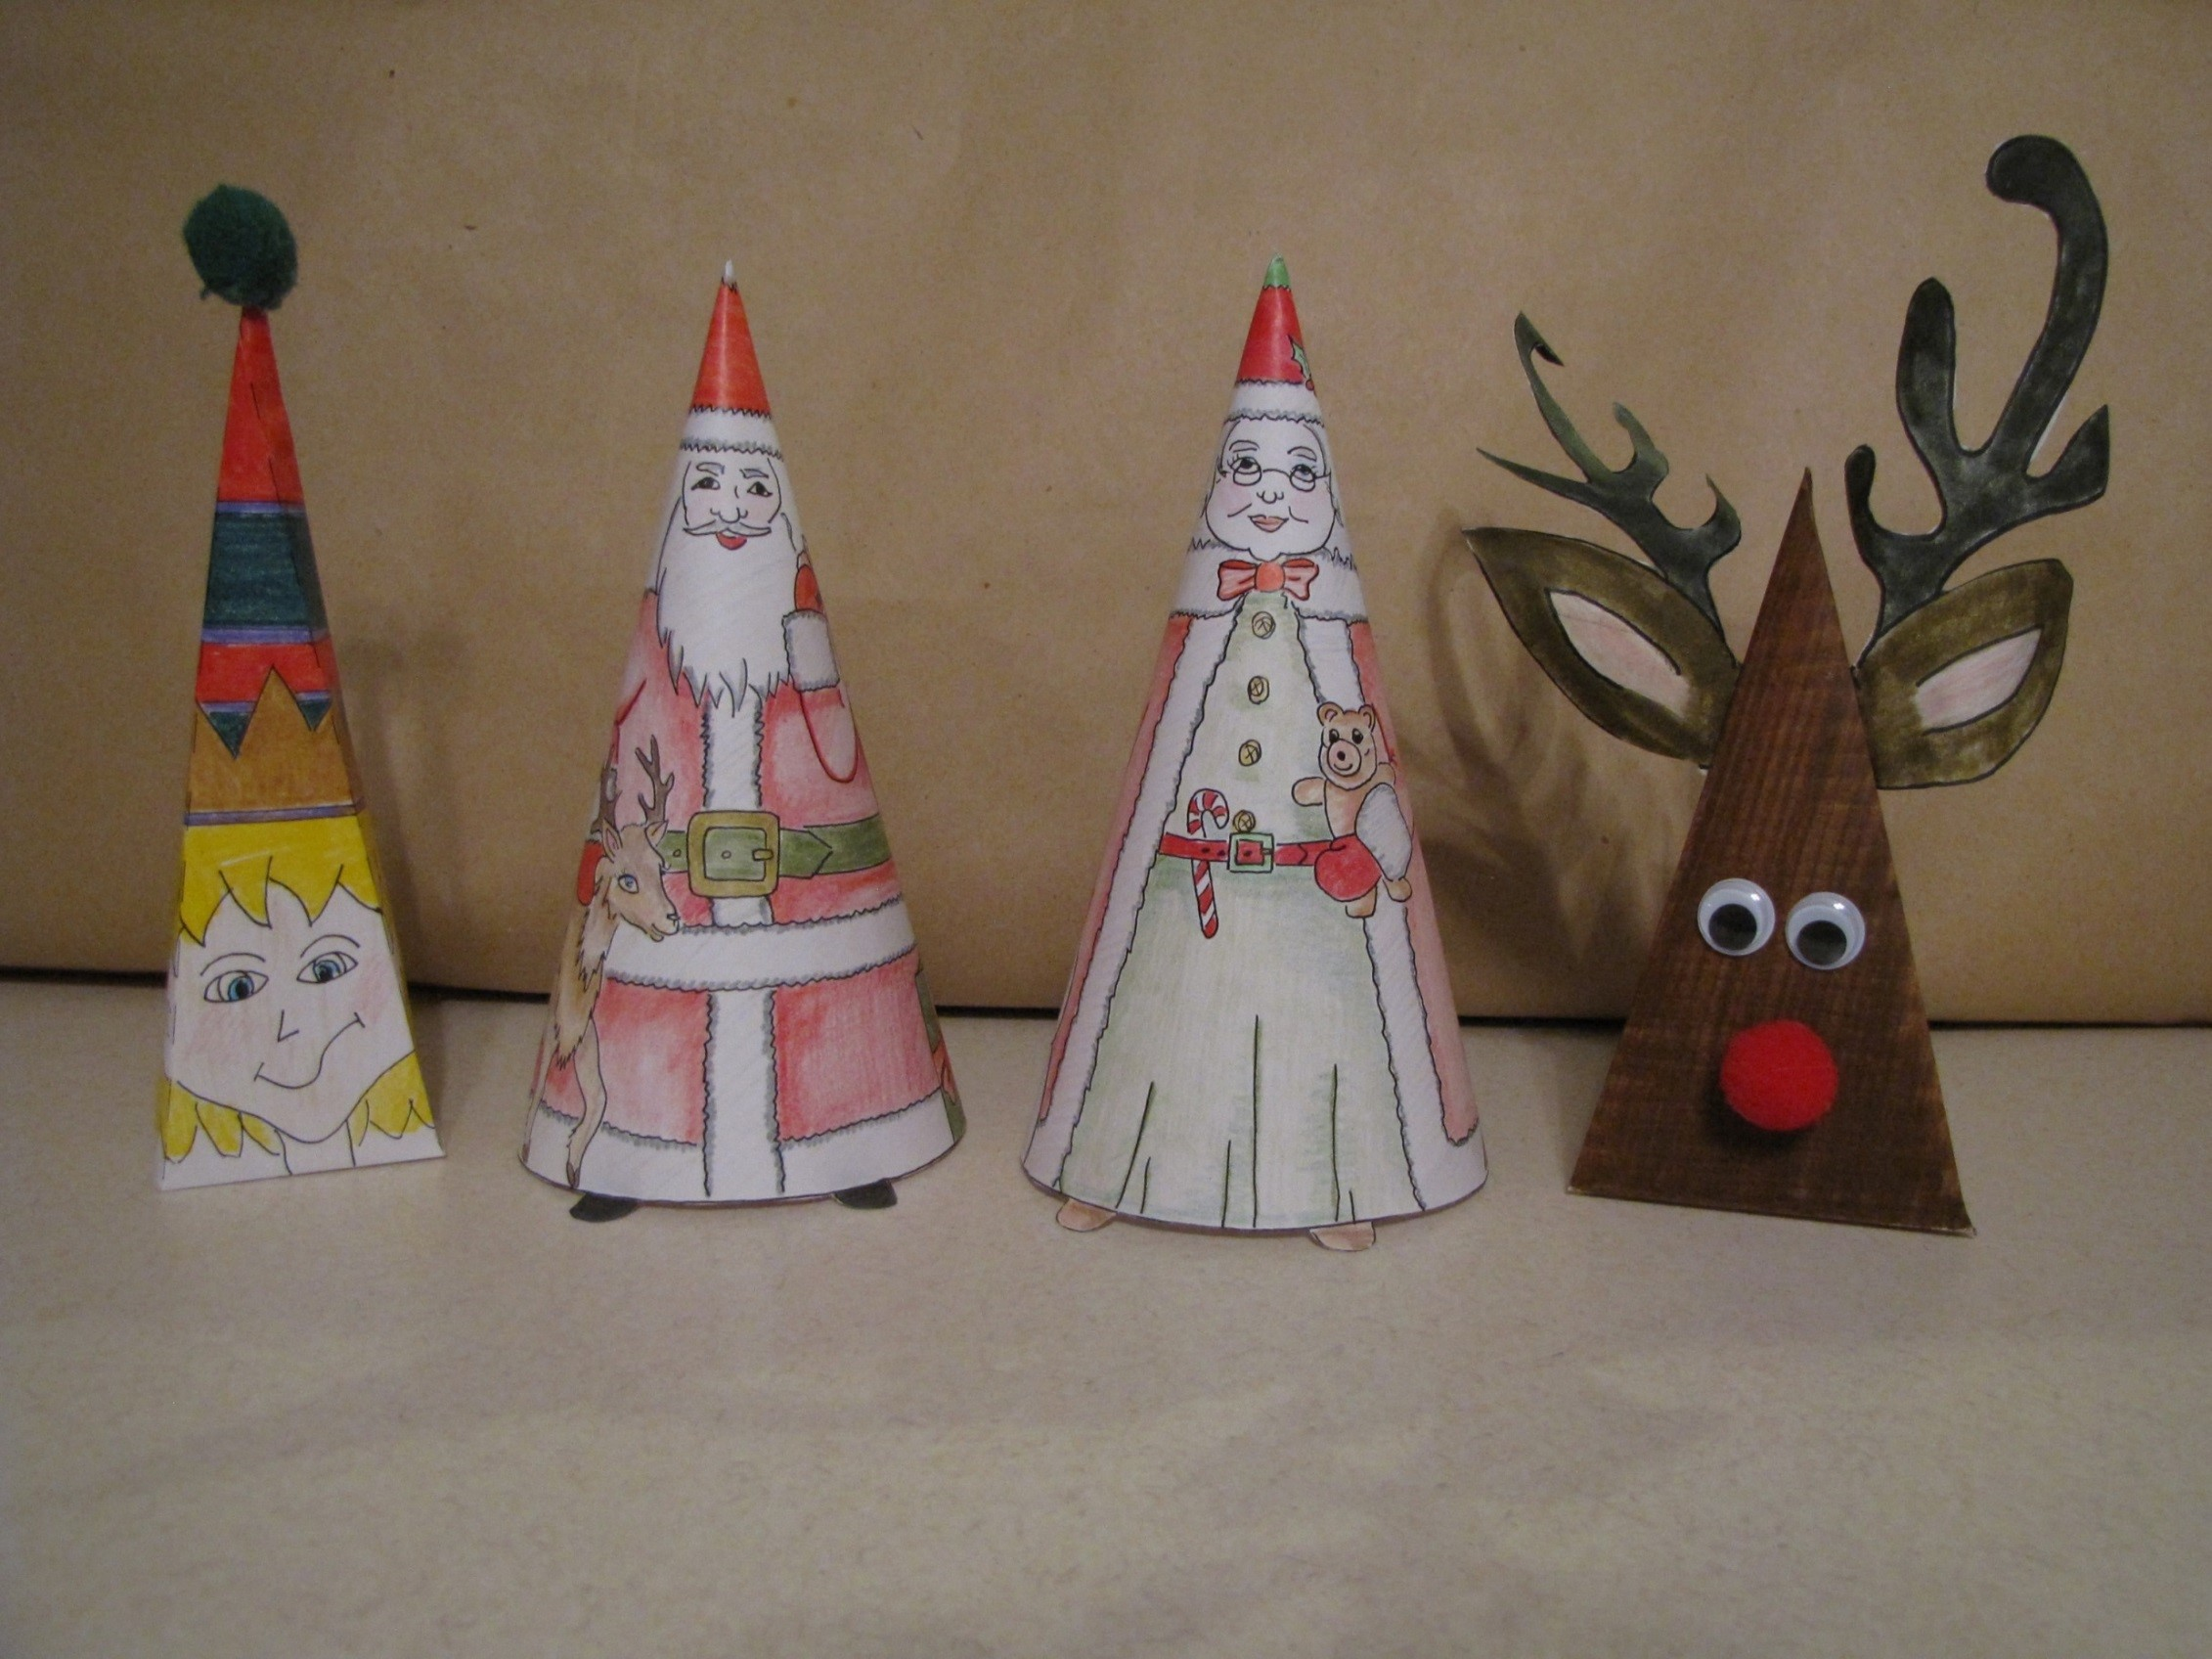 Christmas Crafts - Santa & Mrs. Santa coneheads, Elf, Rudolph and 2 cards